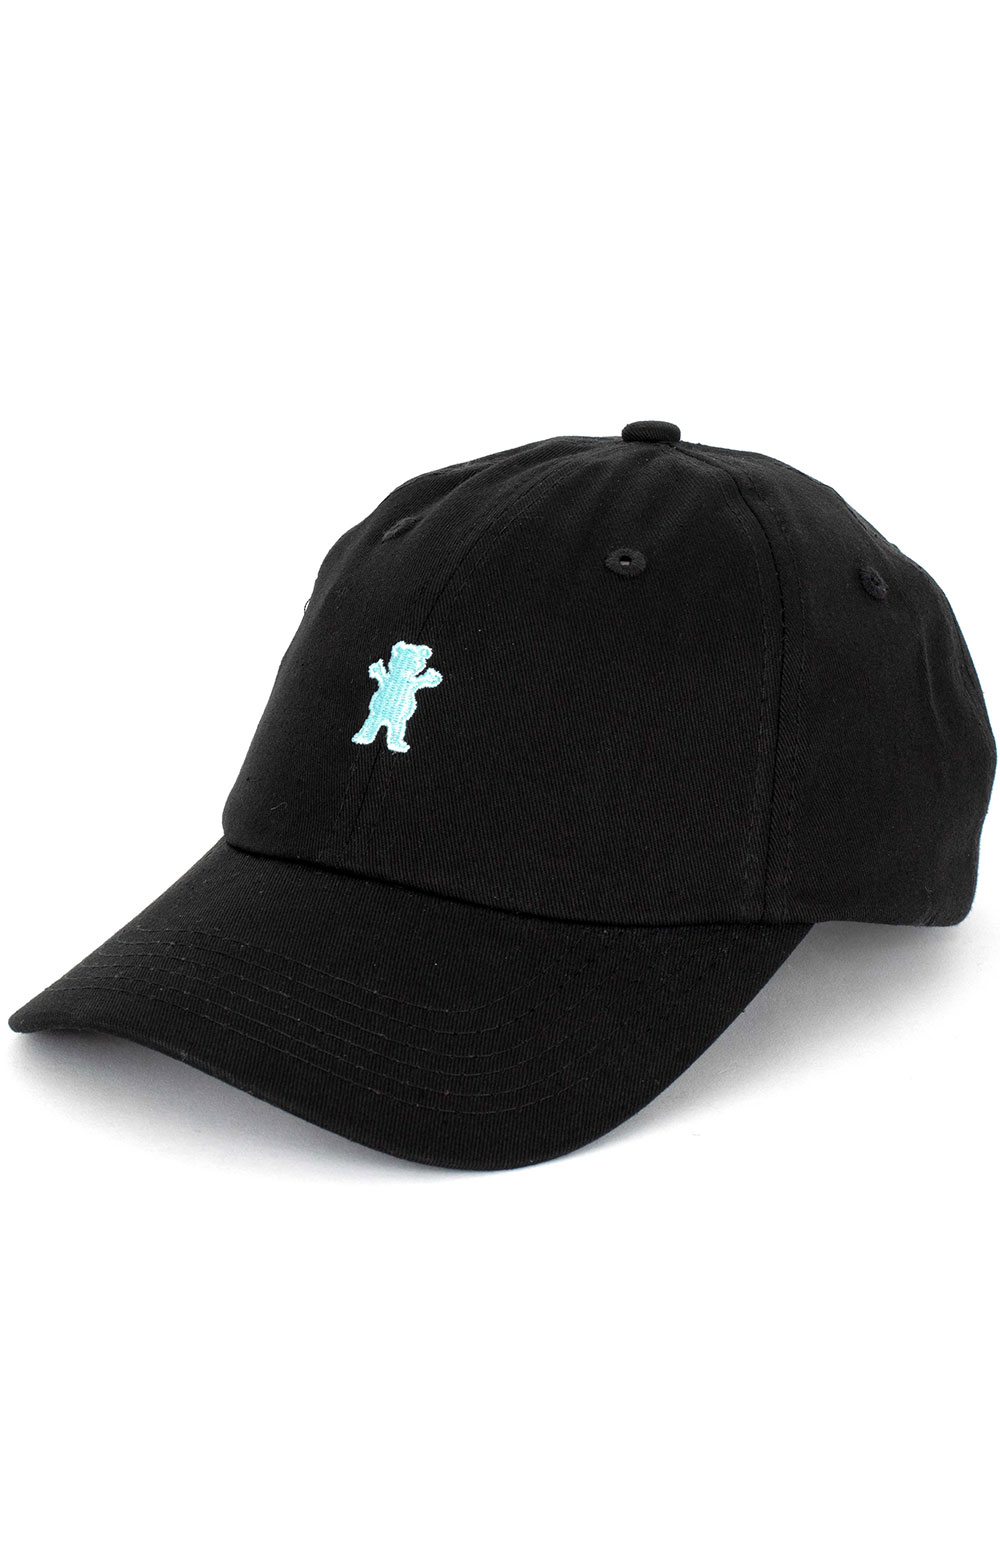 Grizzly, OG Dad Bear Logo Dad Hat - Black/Tiffany